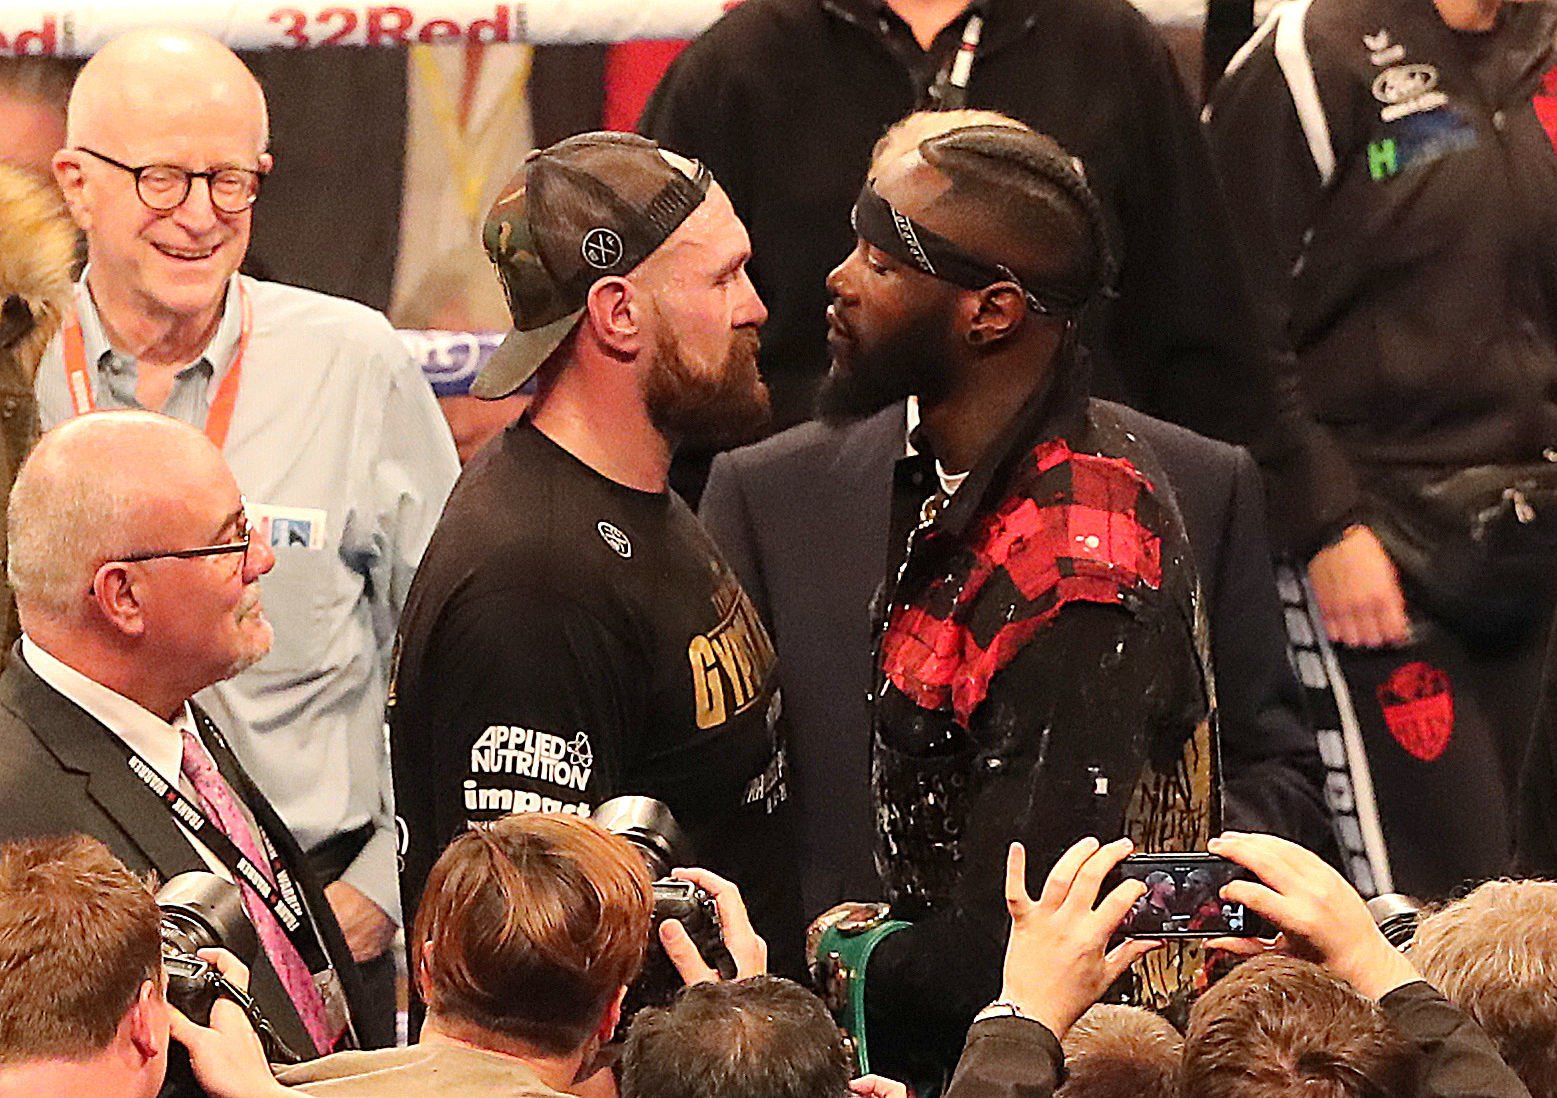 Tyson Fury and WBC heavyweight champion Deontay Wilder at Windsor Park, Belfast. PRESS ASSOCIATION Photo. Picture date: Saturday August 18, 2018. See PA story BOXING Belfast. Photo credit should read: Niall Carson/PA Wire